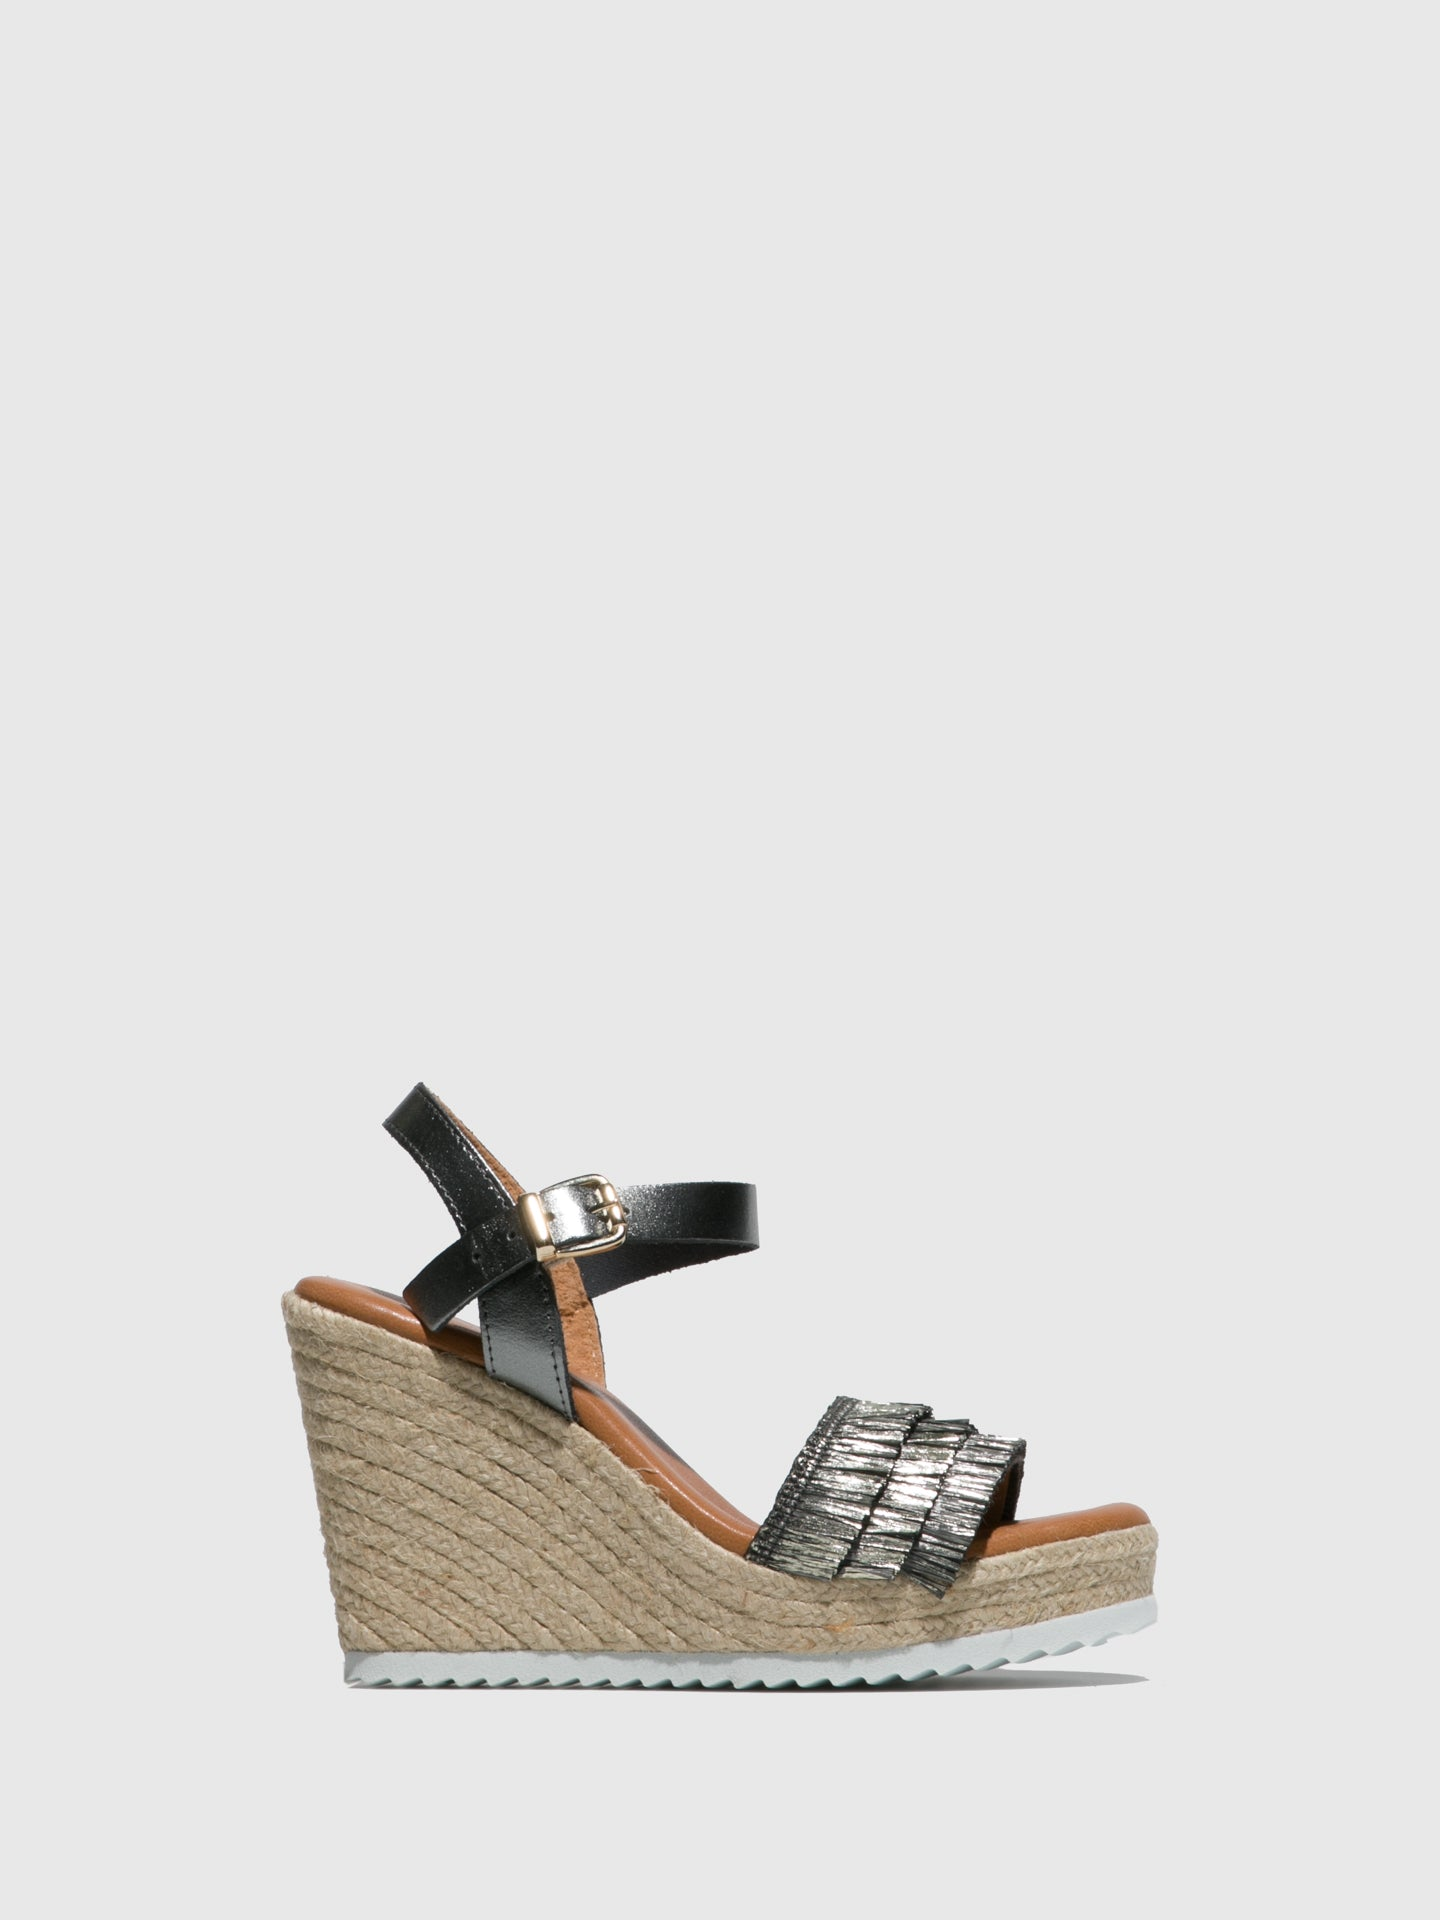 Sotoalto DarkGray Wedge Sandals